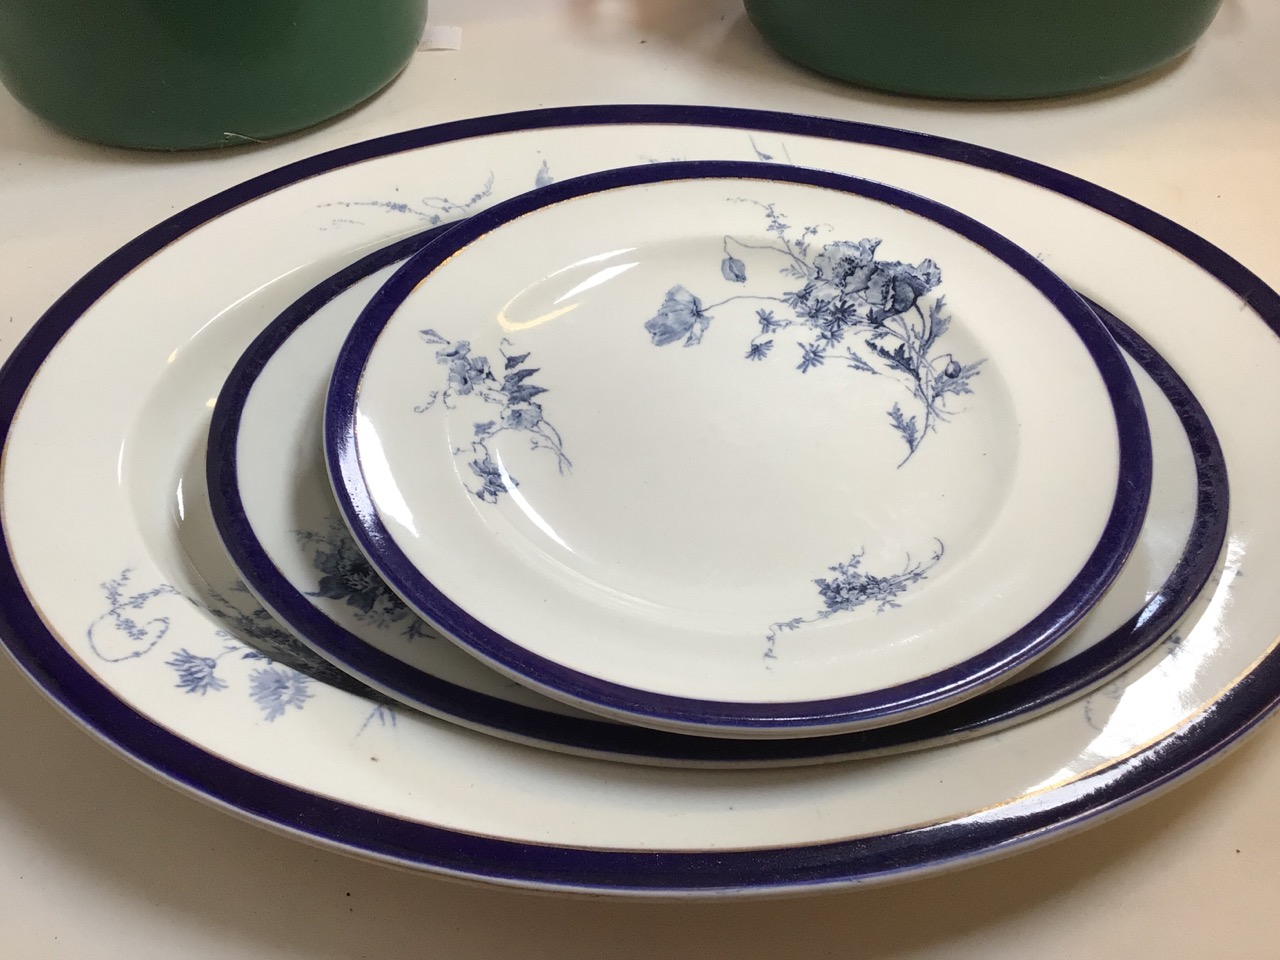 Le Creuset casserole dishes orange and green, Worcester blue and white plates also with a blue and - Image 2 of 7